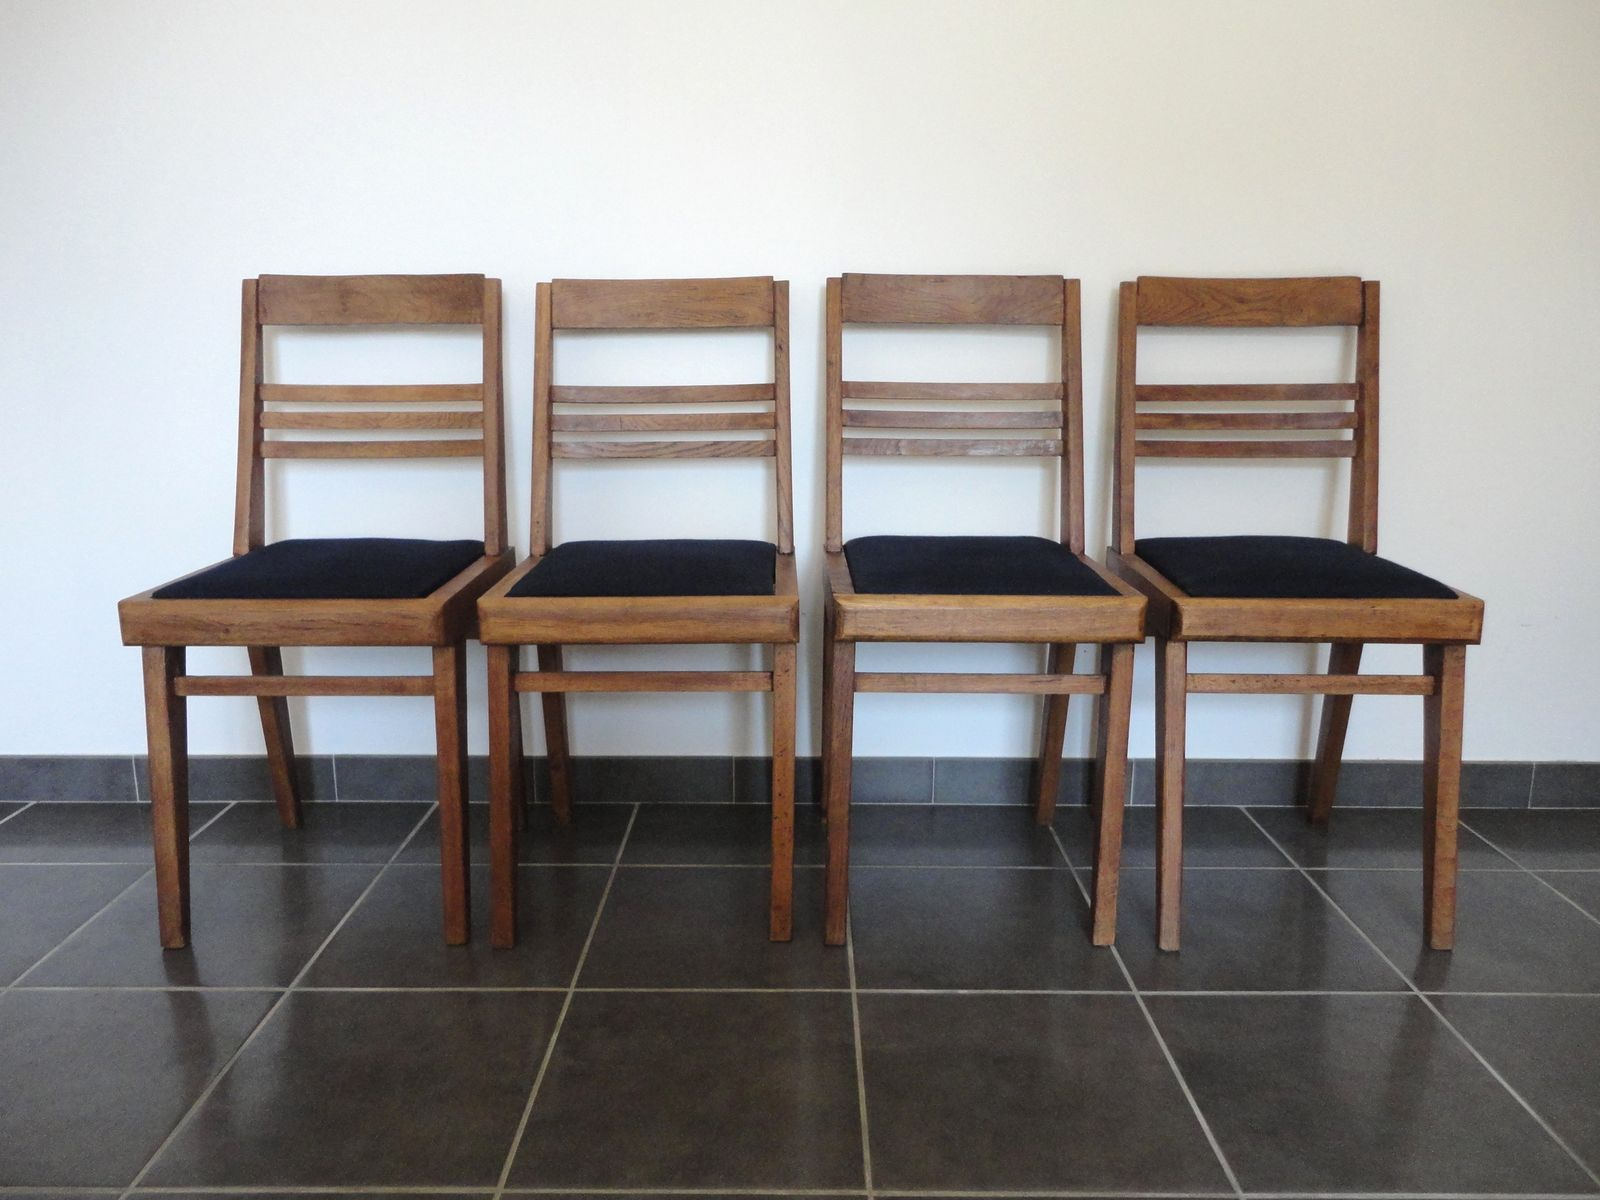 Vintage Oak Dining Chairs 1940s Set Of 4 For Sale At Pamono